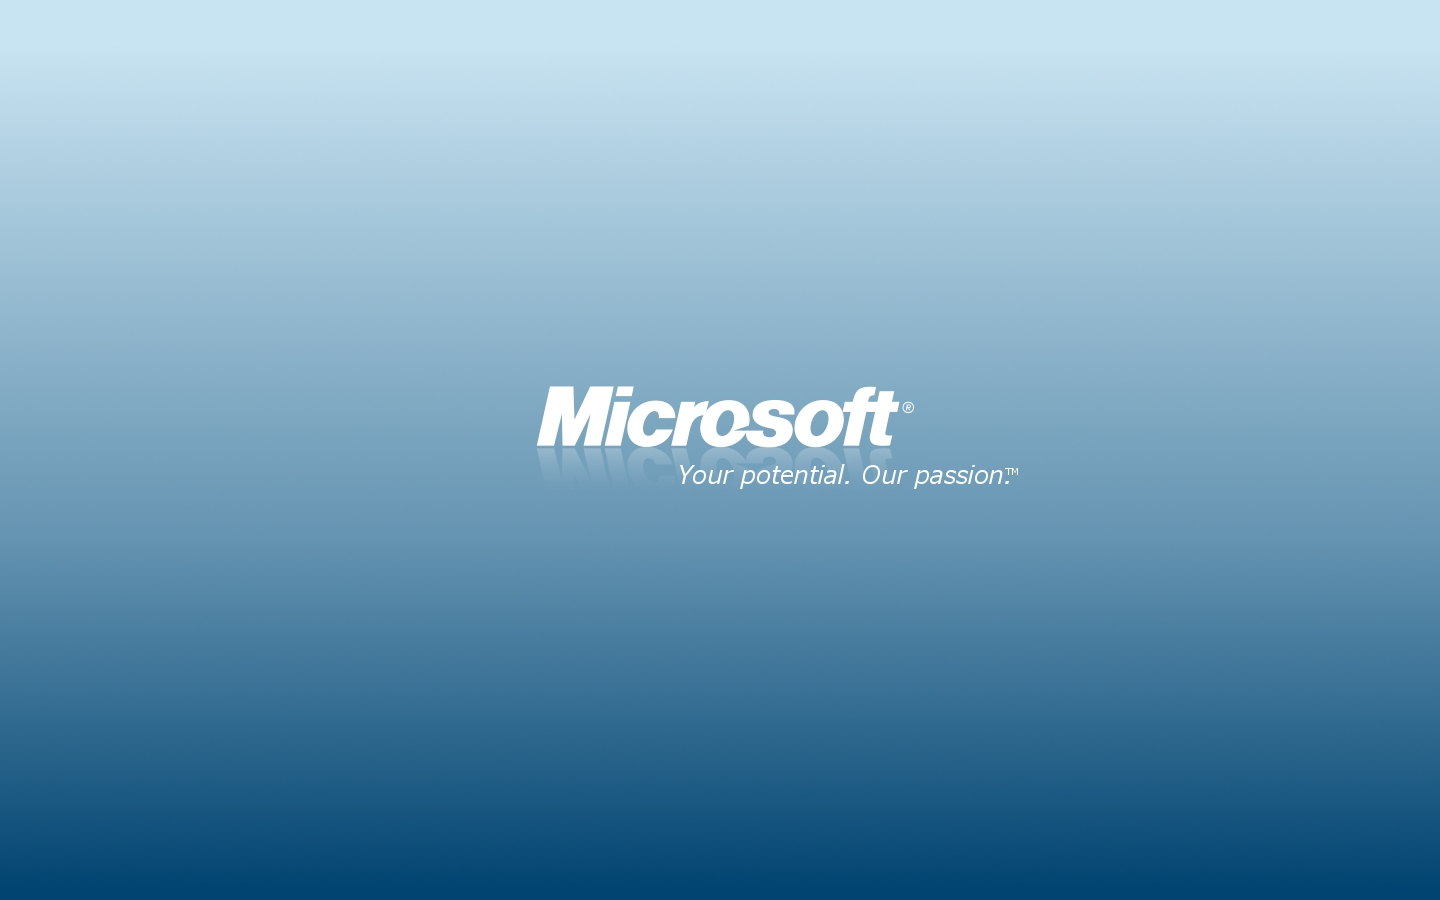 Free Microsoft Wallpaper